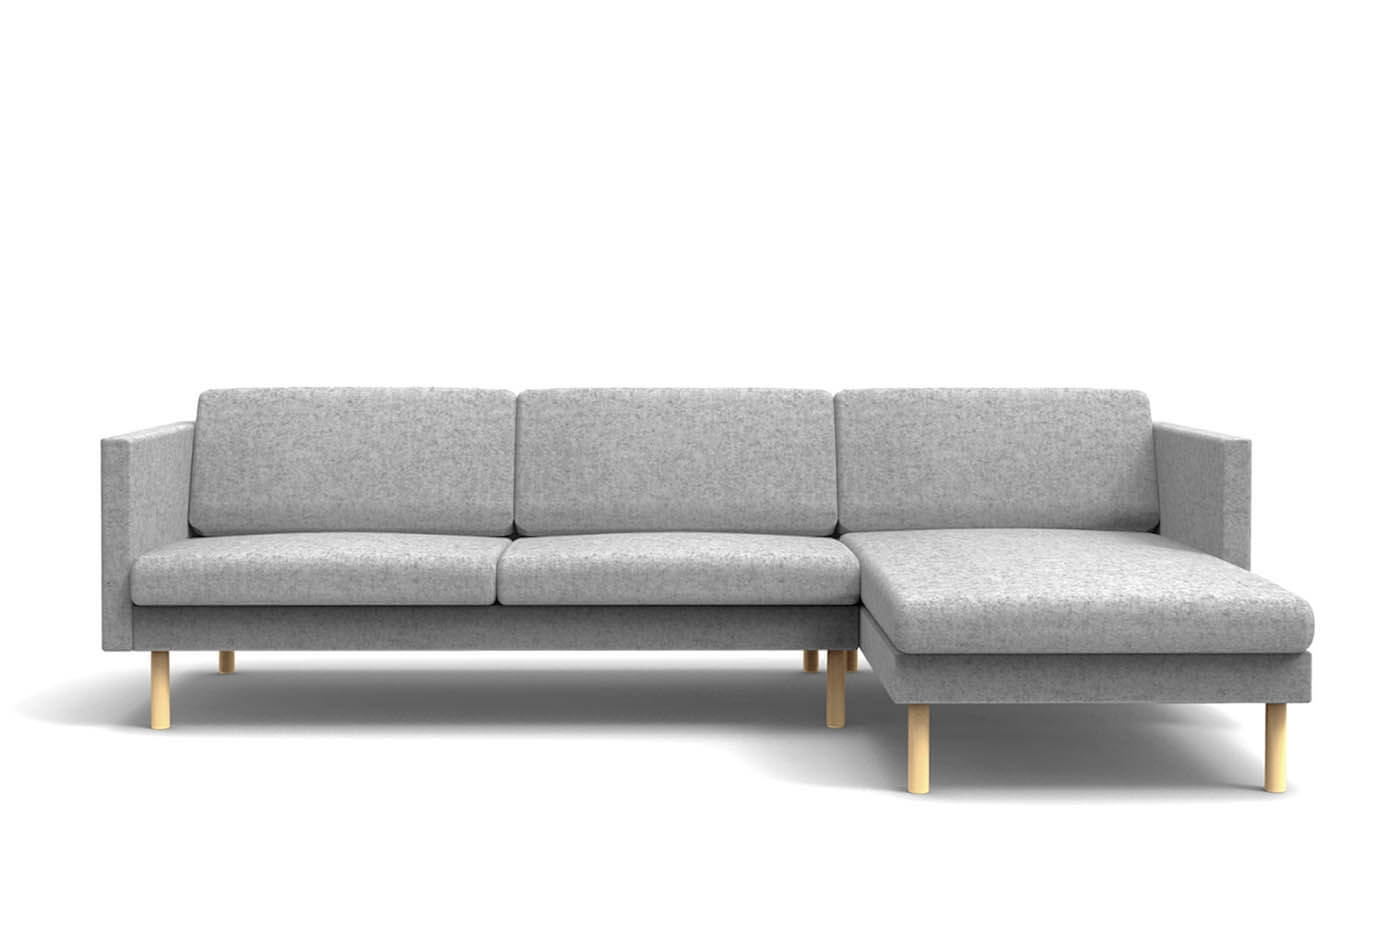 Trendy Leaf Sofa Chaise Lounge Left – Oot Oot Studio Inside Sofas With Chaise Lounge (View 13 of 15)